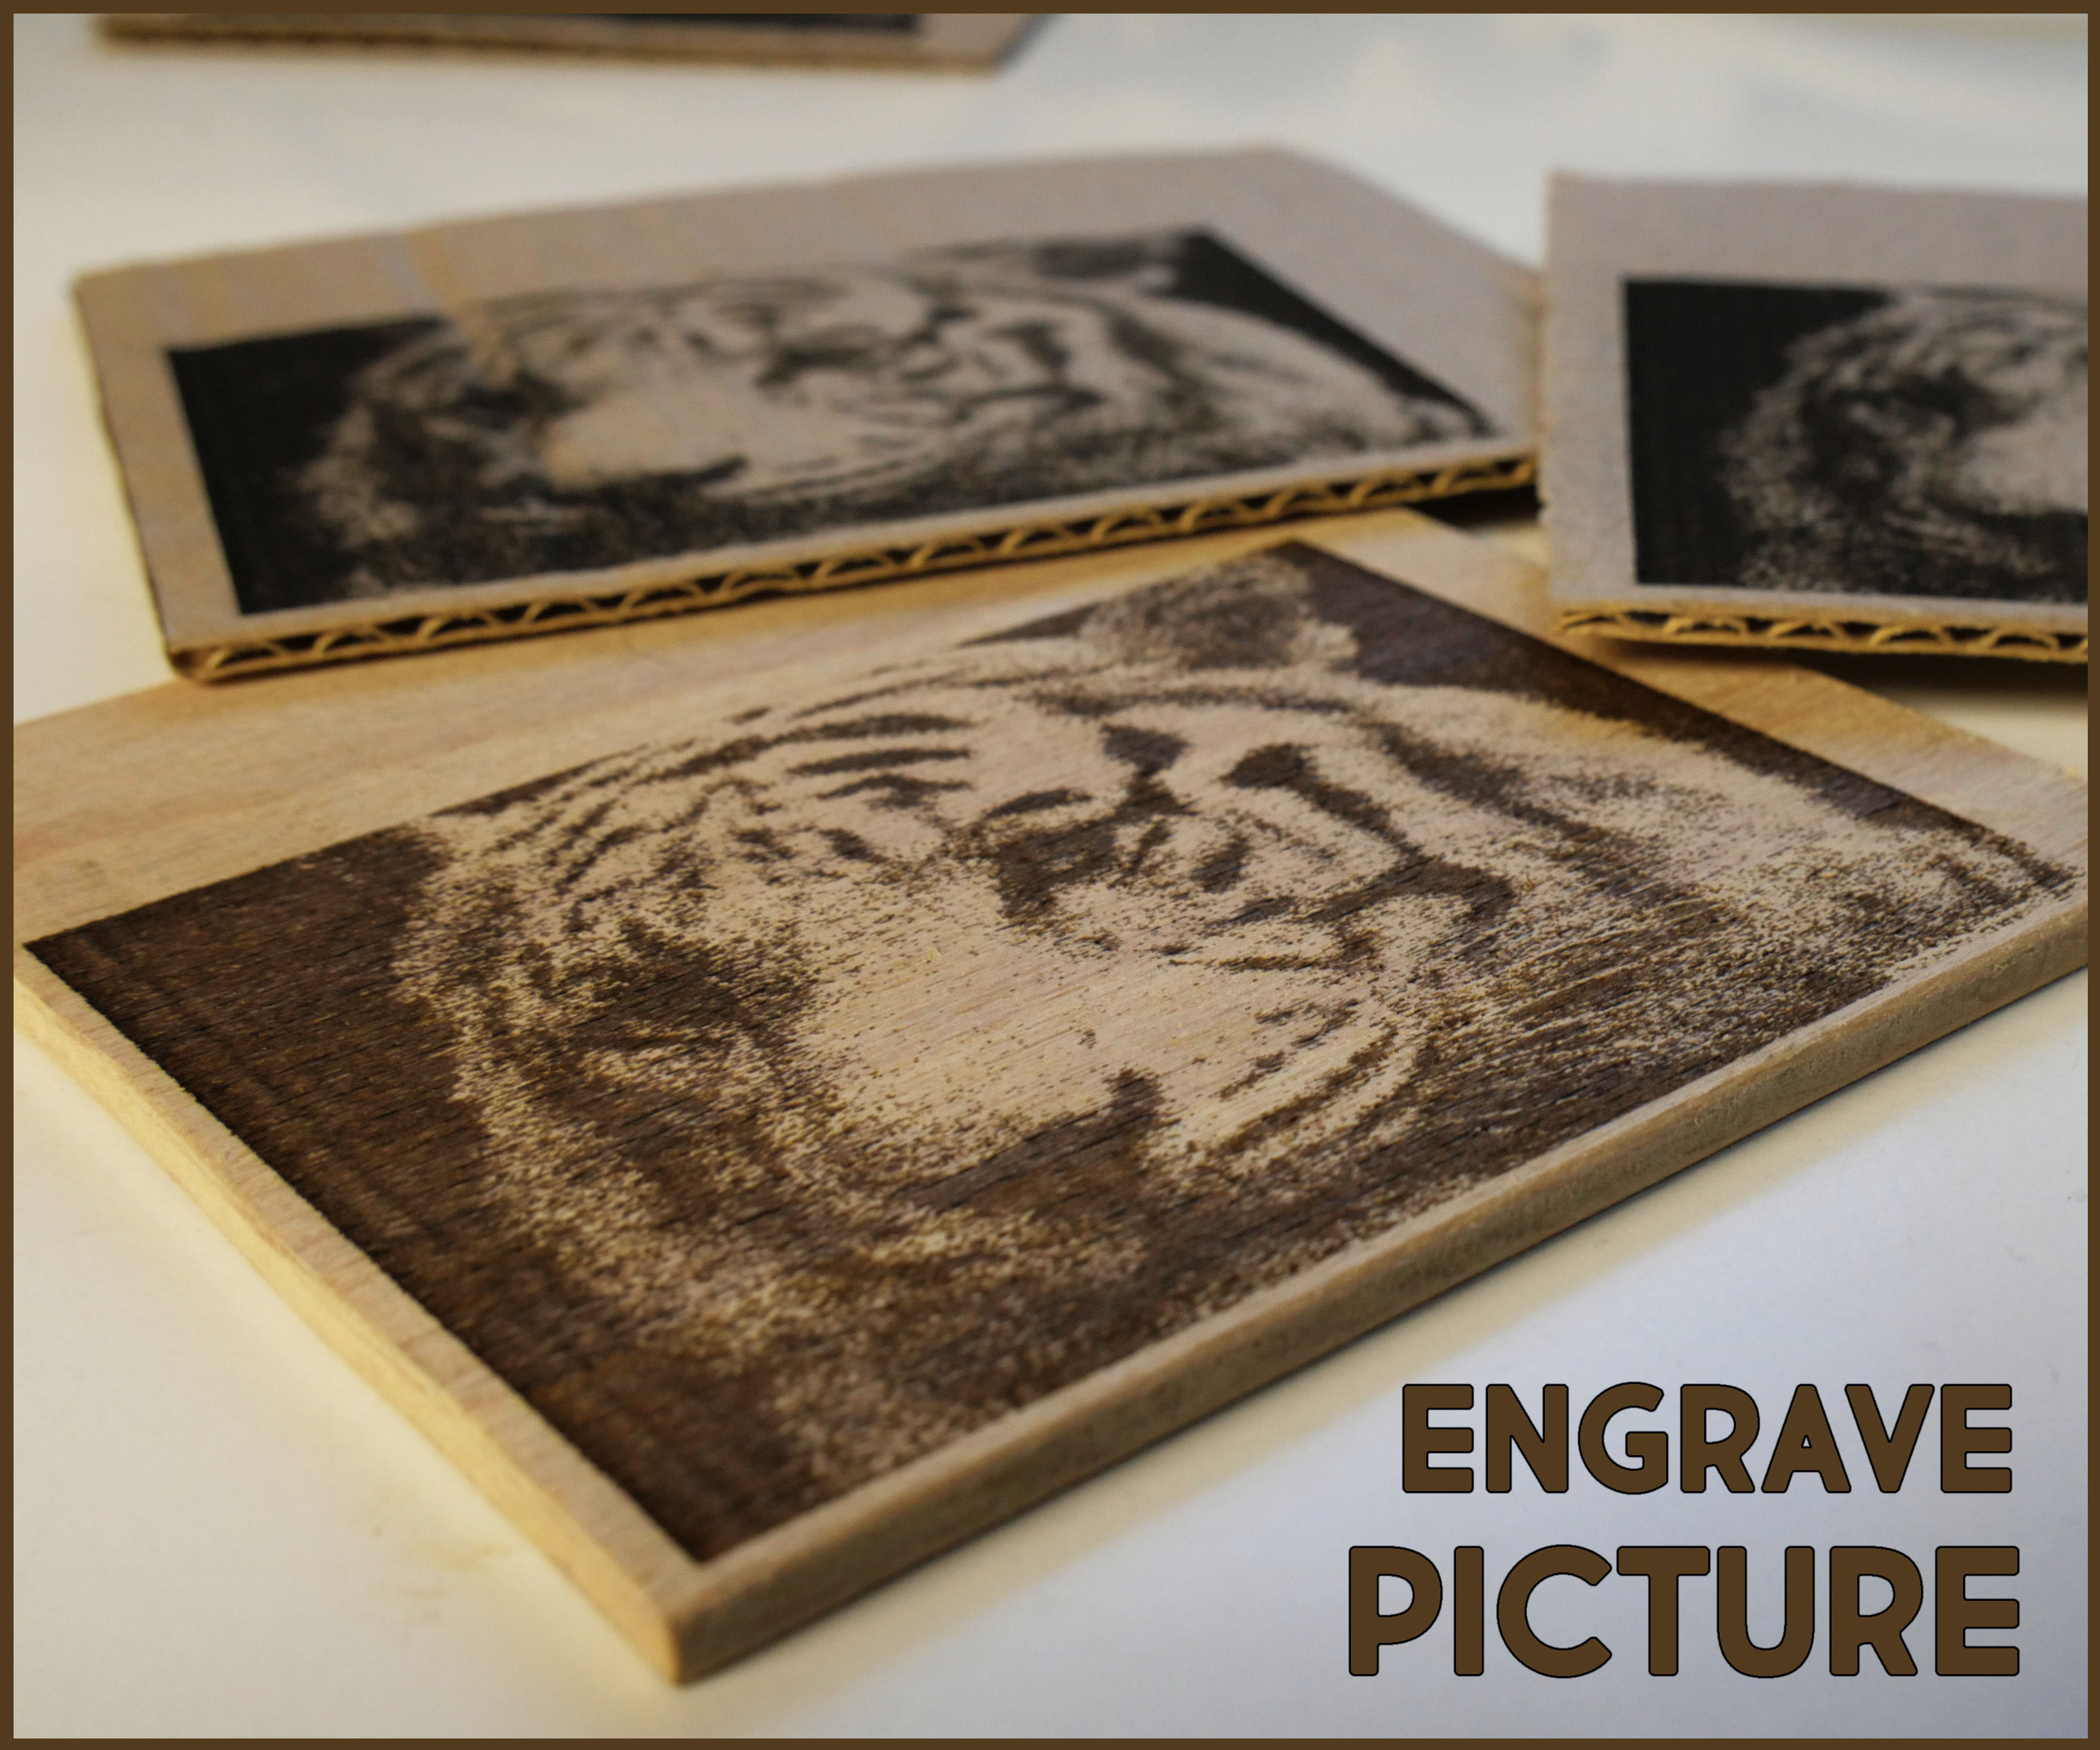 How to Engrave Picture on Wood